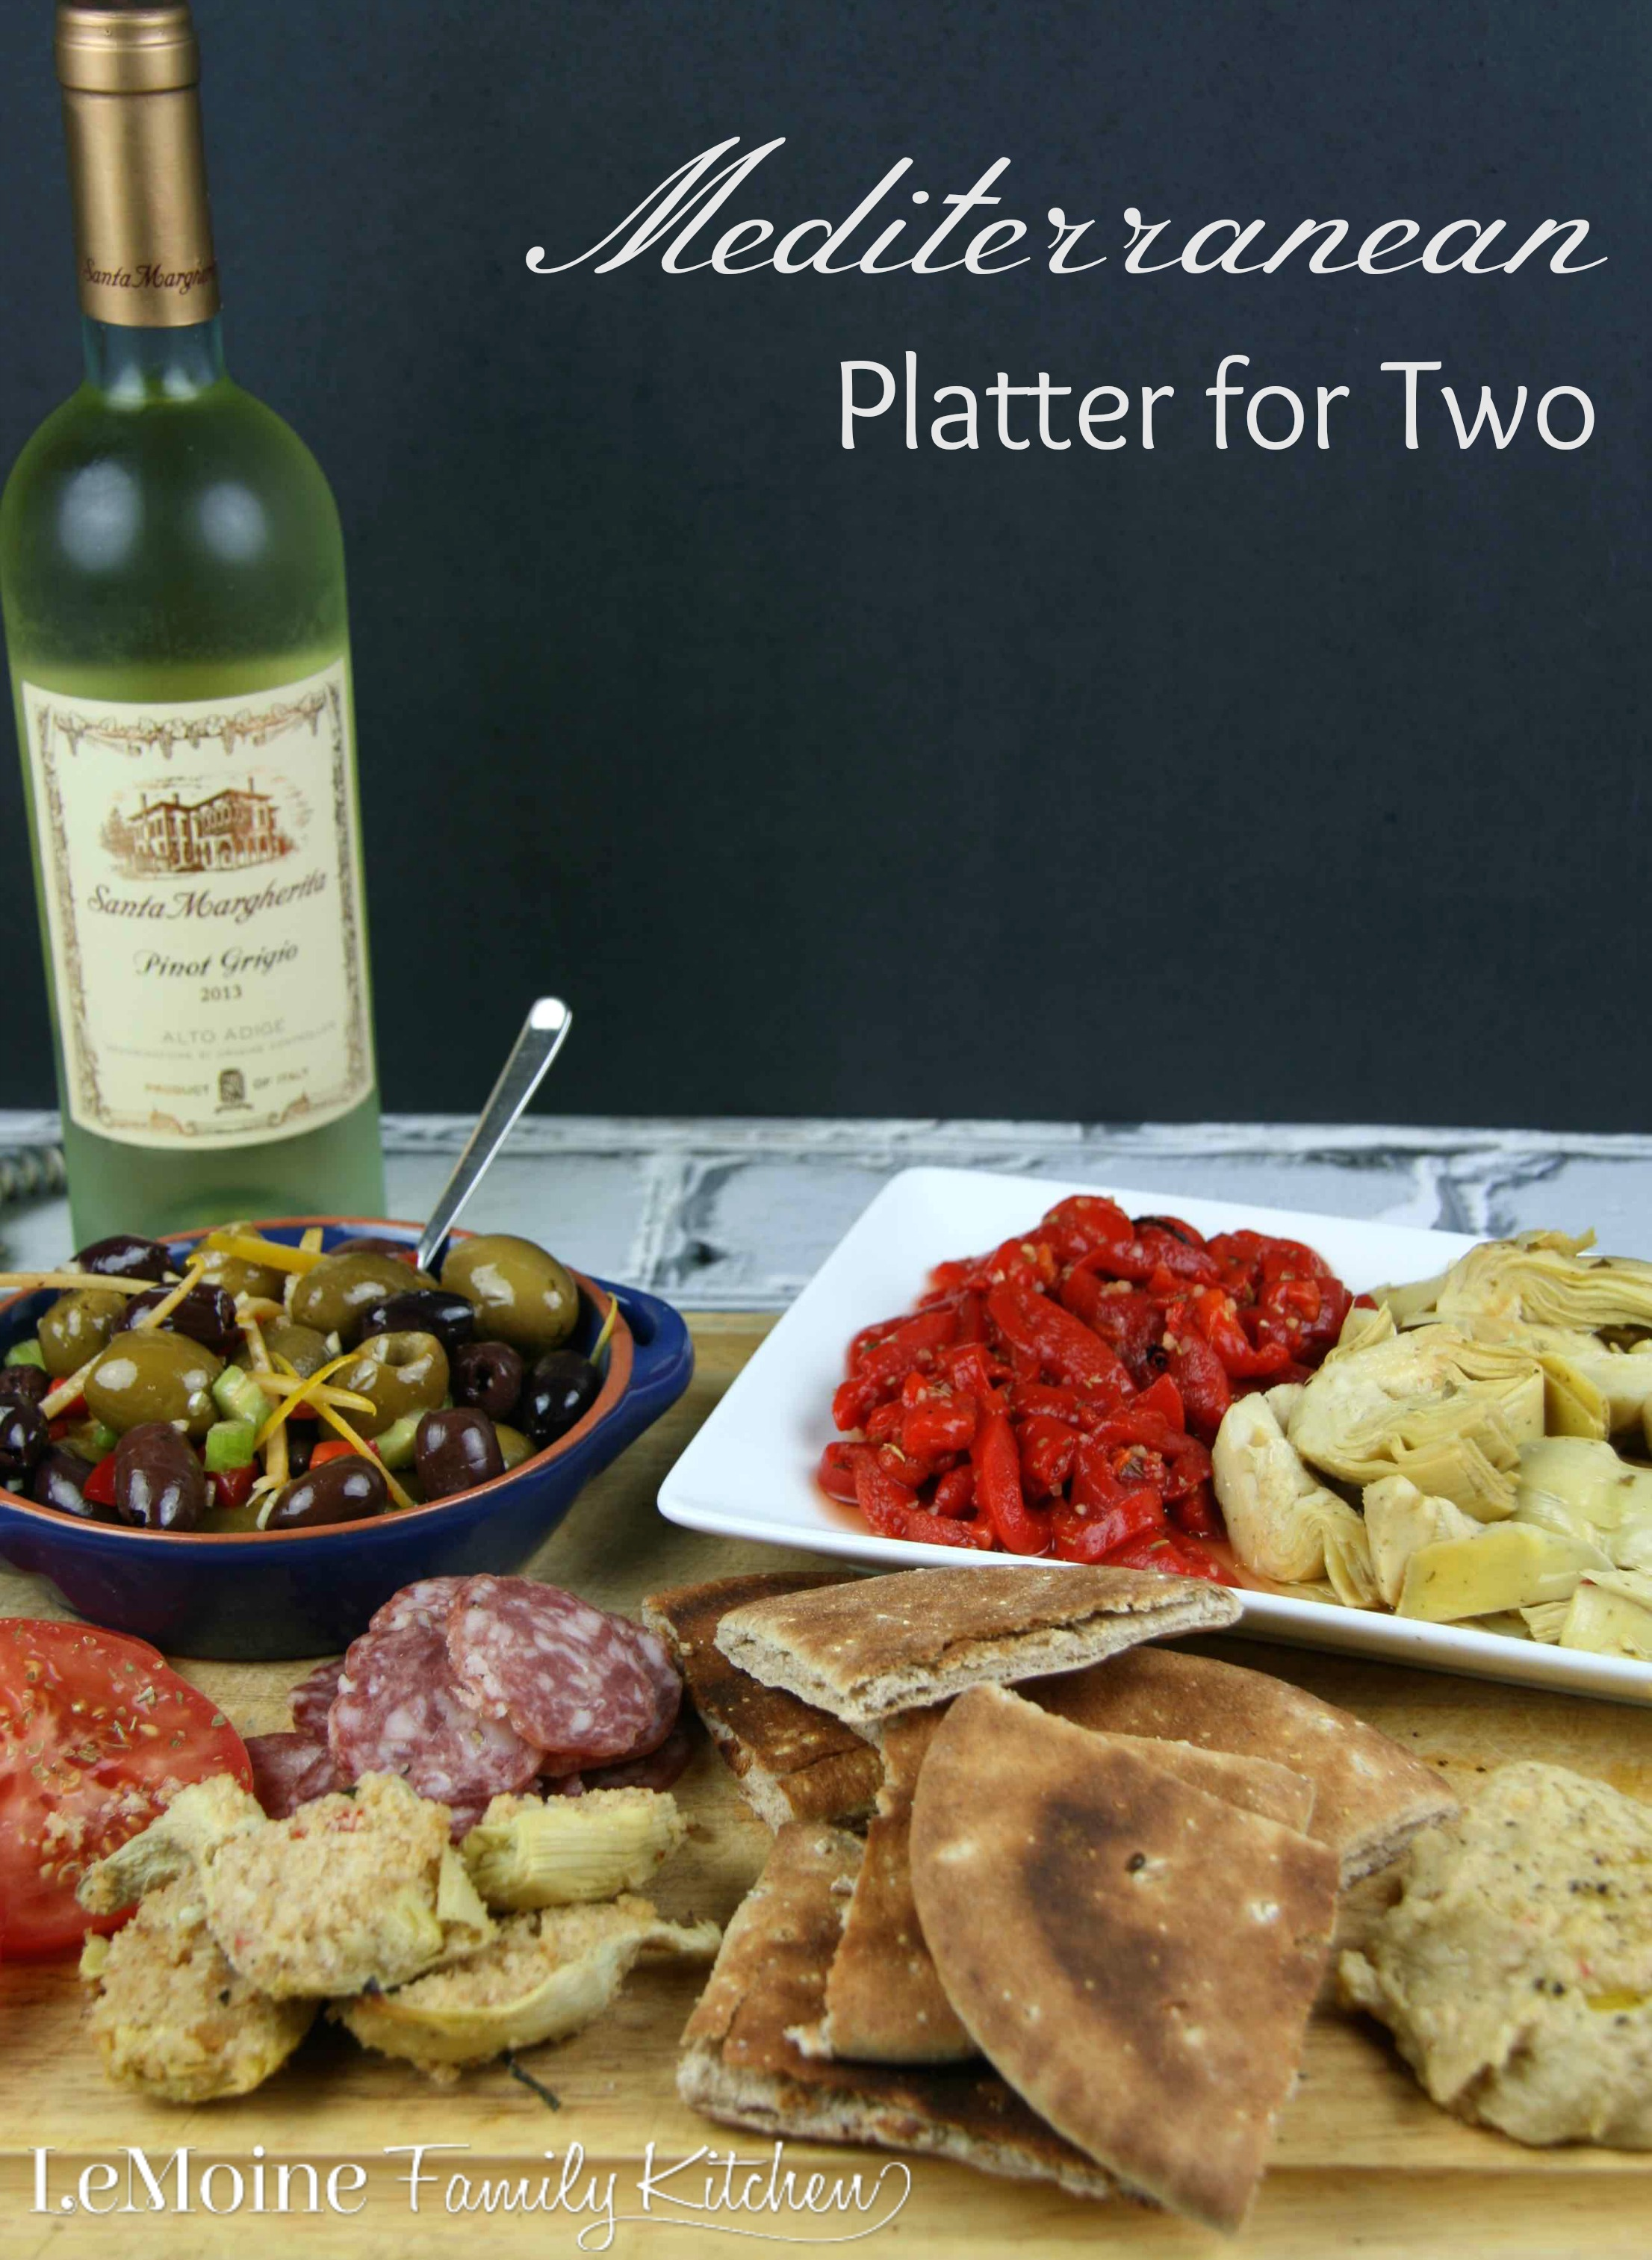 Mediterranean Platter for Two